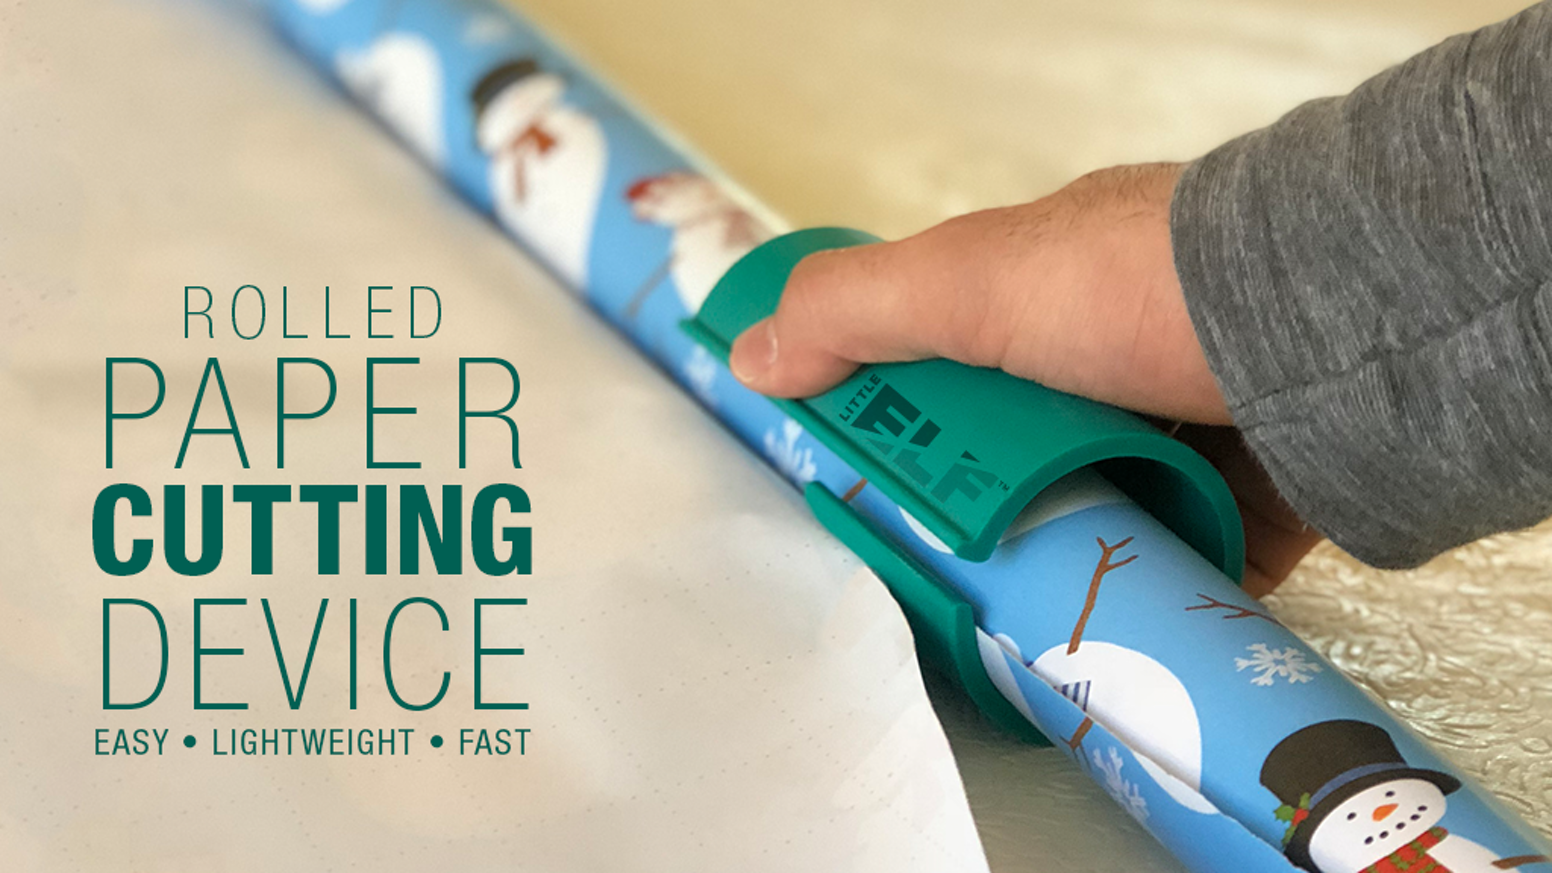 Little ELF is a patent pending device which is the most efficient, safe, and easy device for cutting wrapping paper.